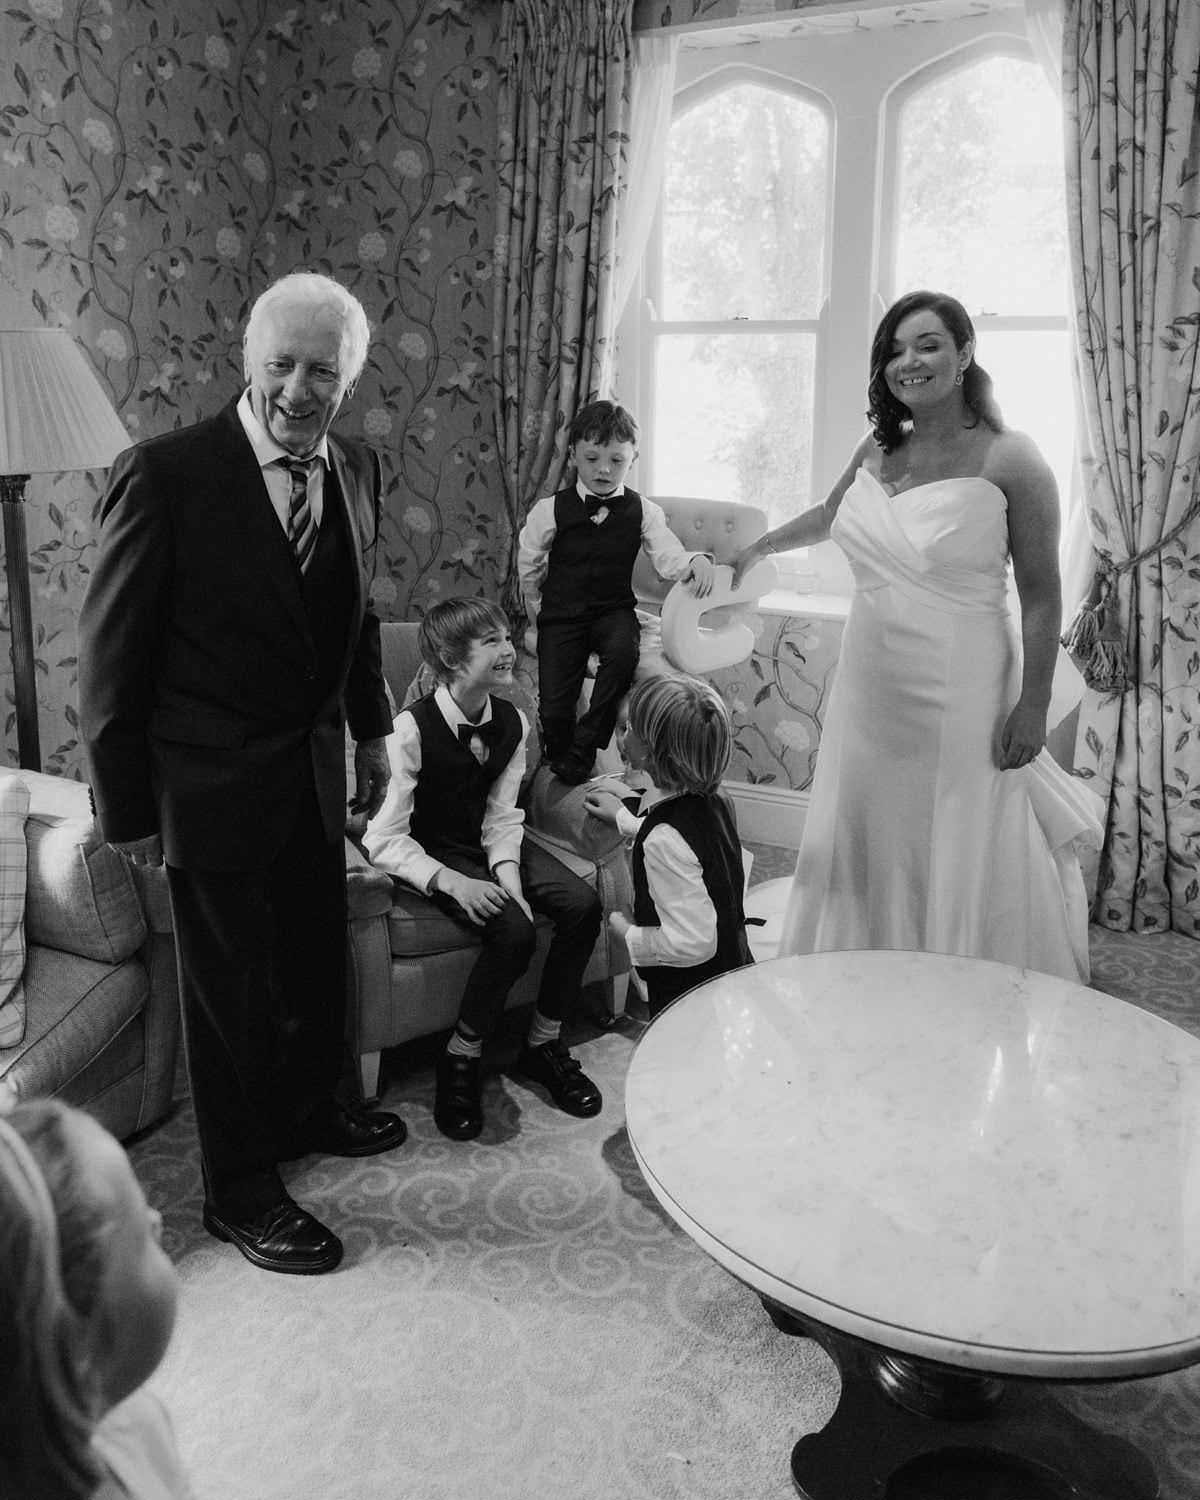 documentary style wedding photographer in northern ireland